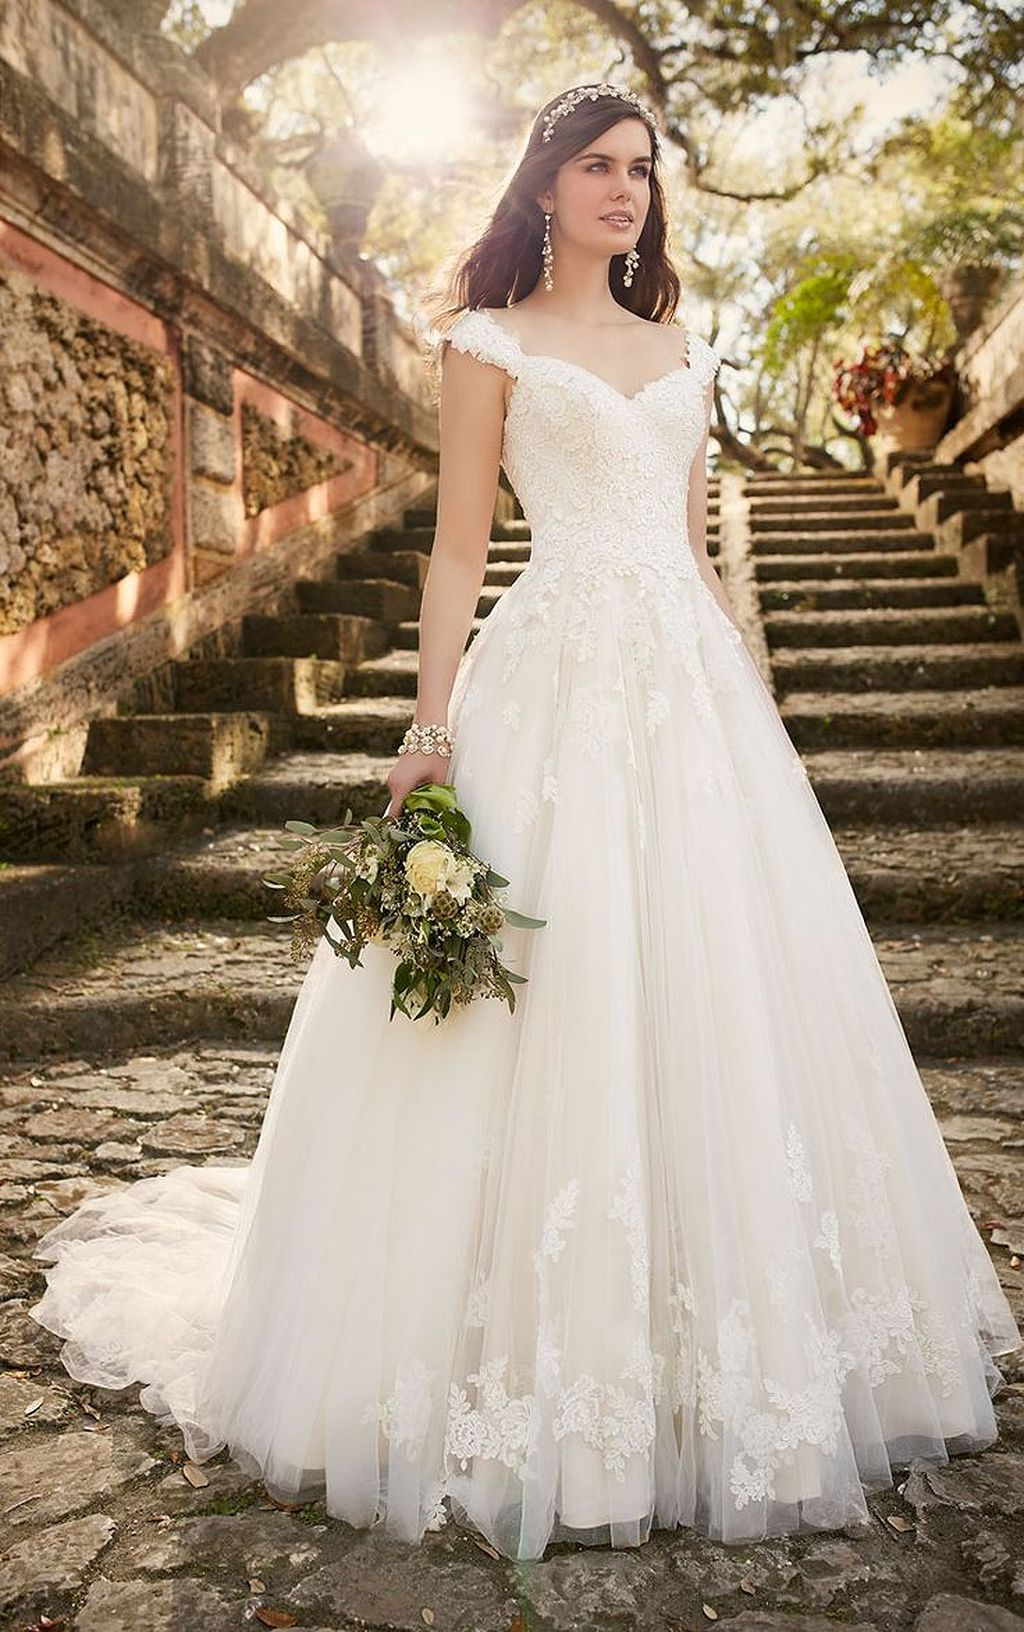 Casual wedding dresses with sleeves   Classy Spring Wedding Dress  Spring weddings Wedding dress and